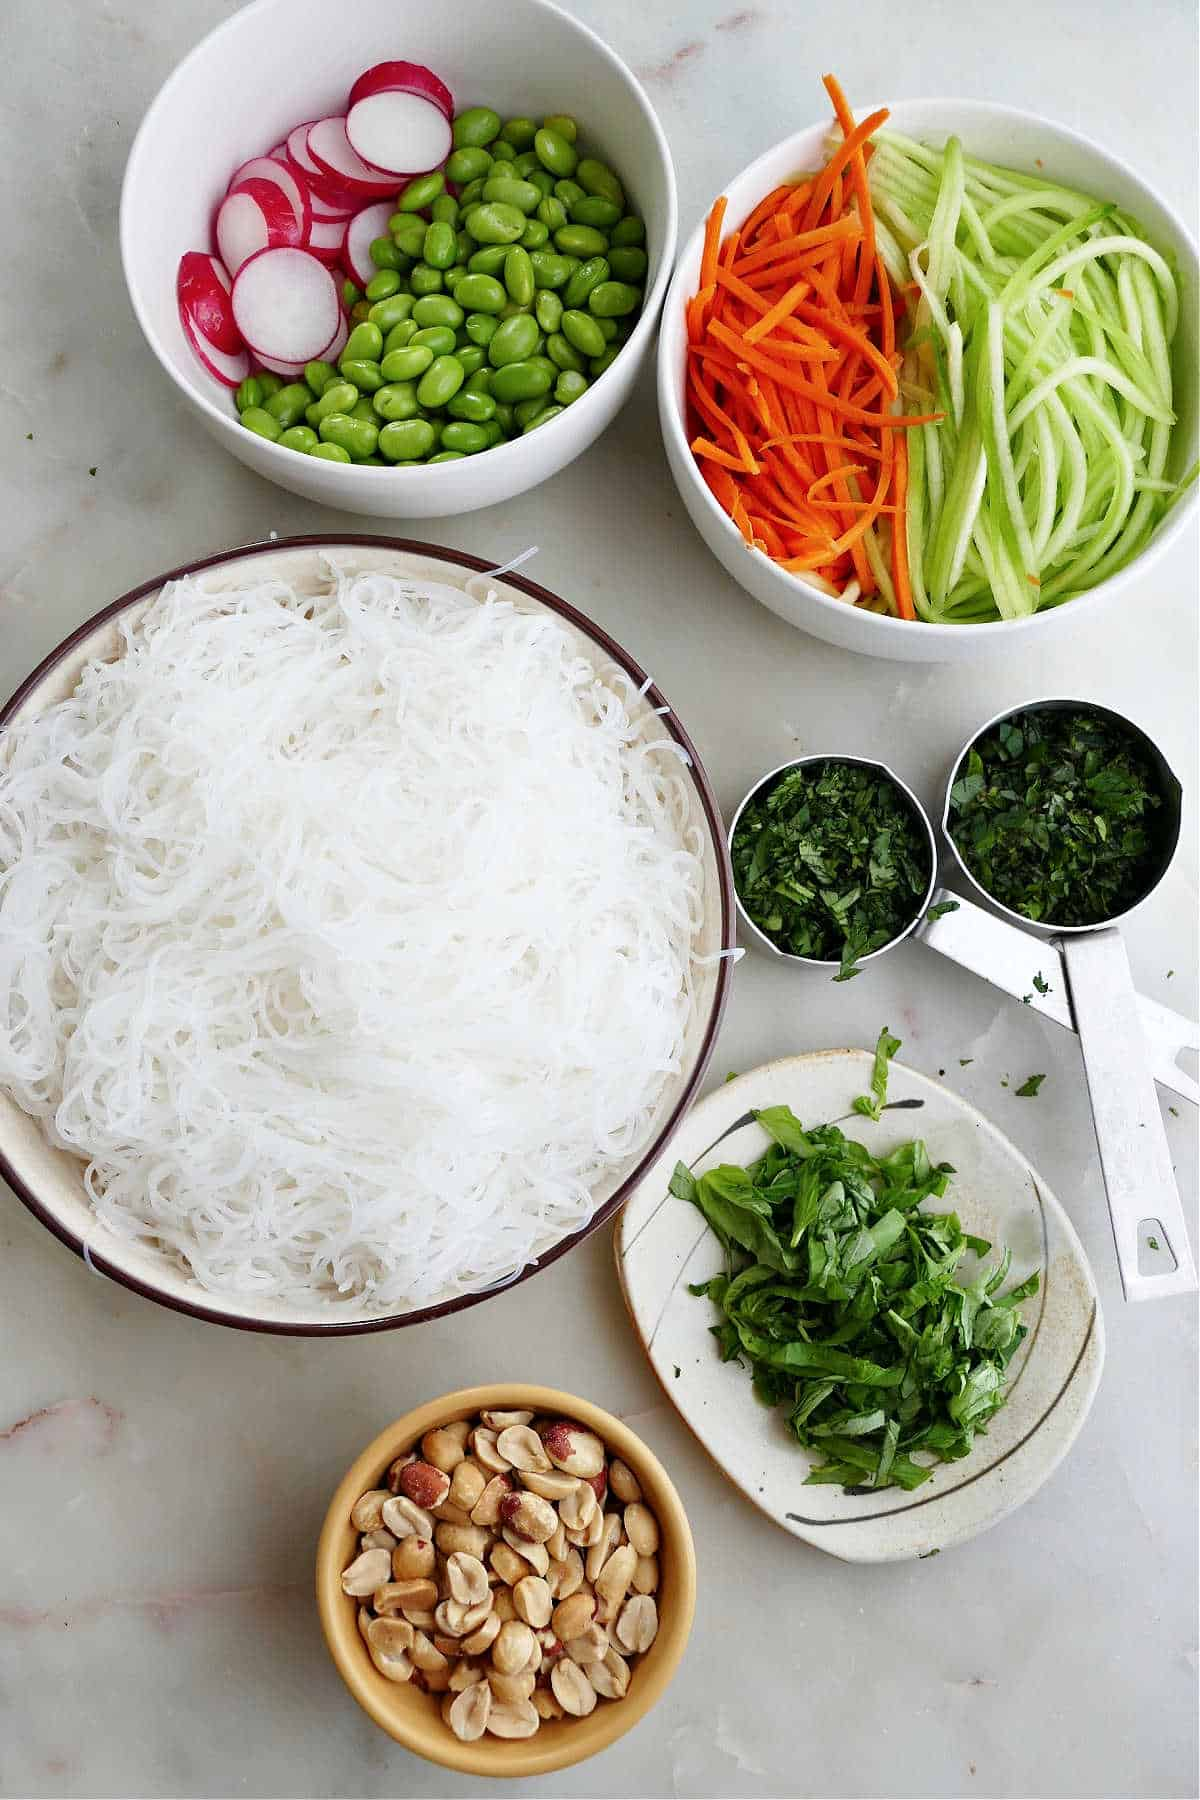 rice noodles, julienned vegetables, herbs, peanuts, and dressing ingredients on a counter